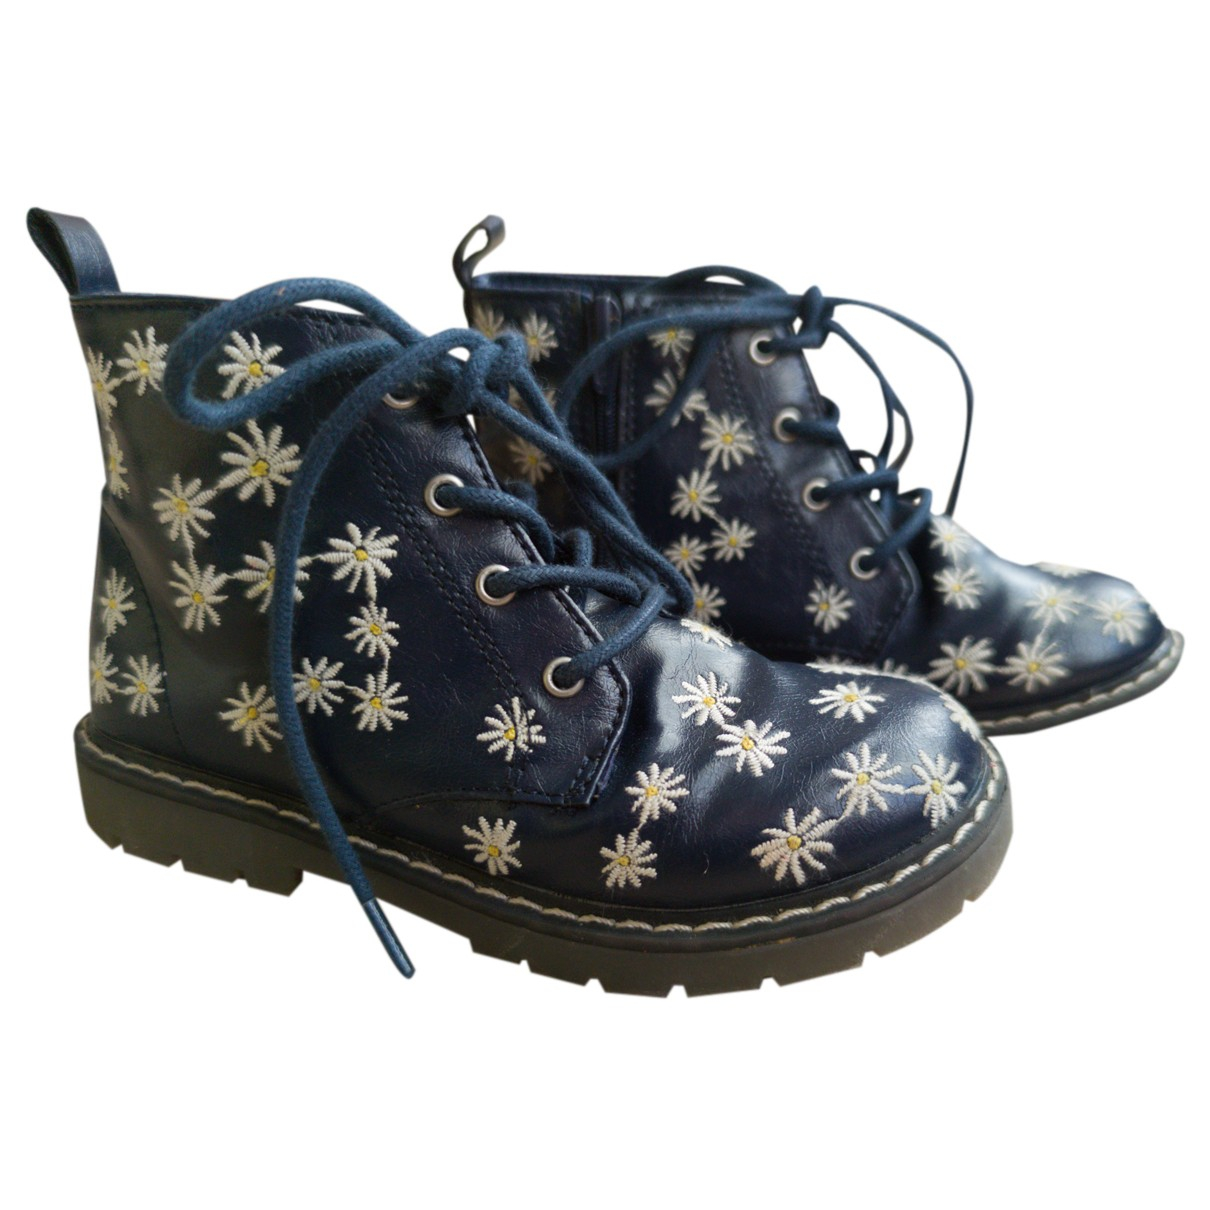 Zara N Blue Leather Boots for Kids 26 FR